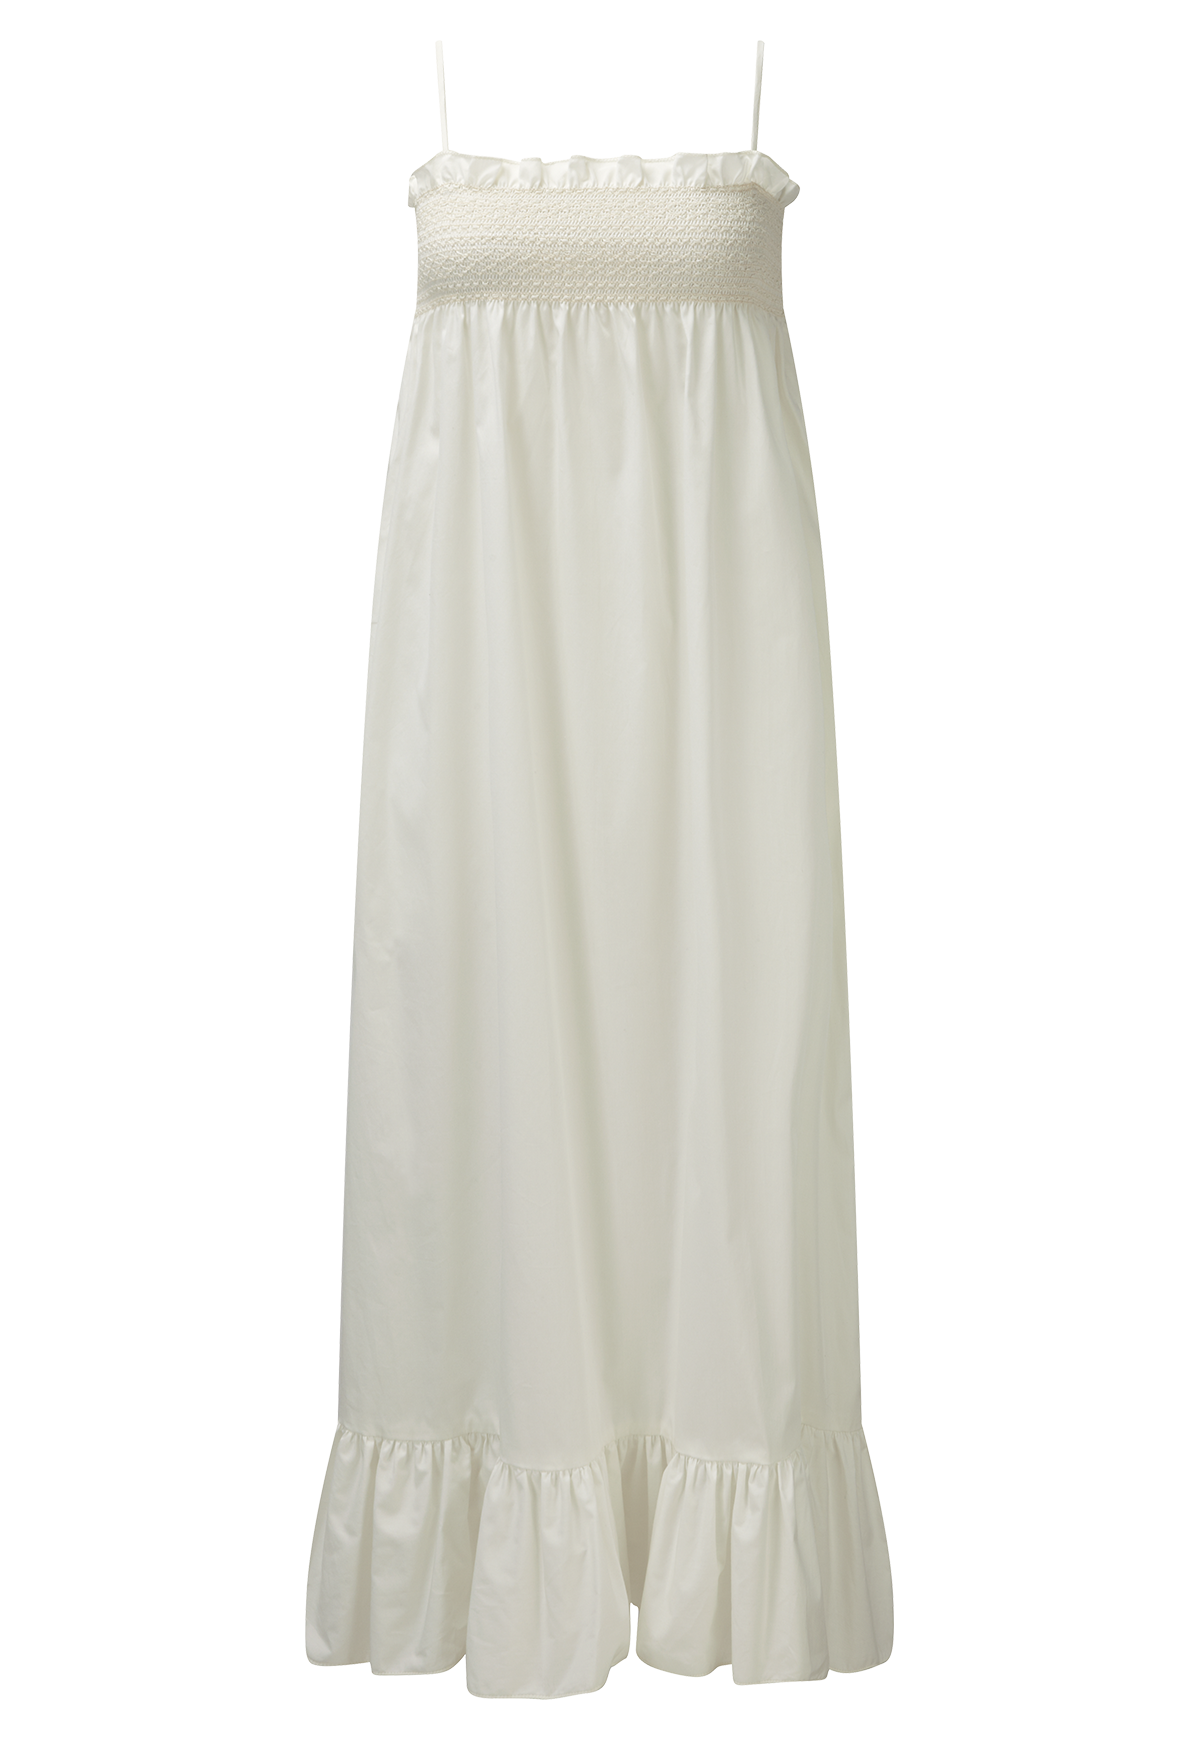 SELENA SMOCKED CREAM COTTON SLIP DRESS